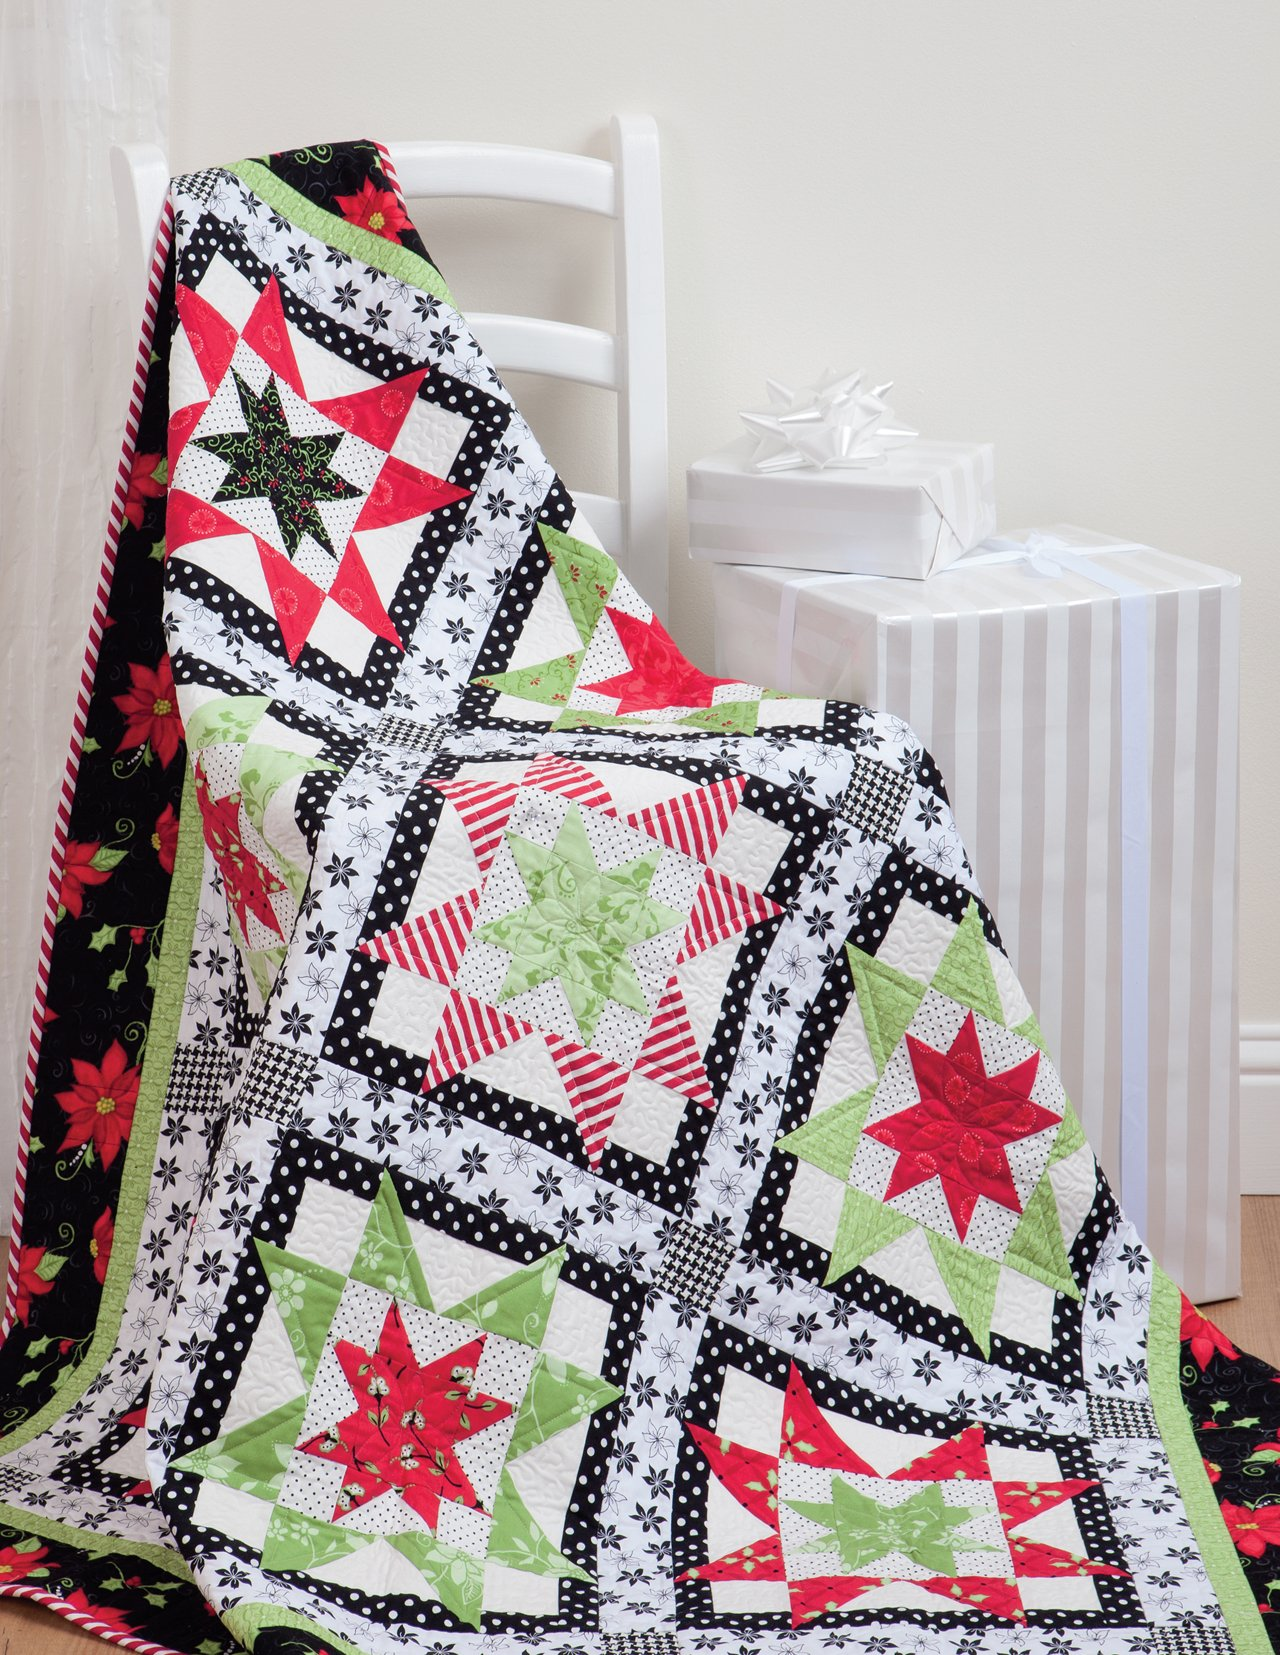 Amazon Com Simply Modern Christmas Fresh Quilting Patterns For The Holidays 0744527111749 Lammon Cindy Books